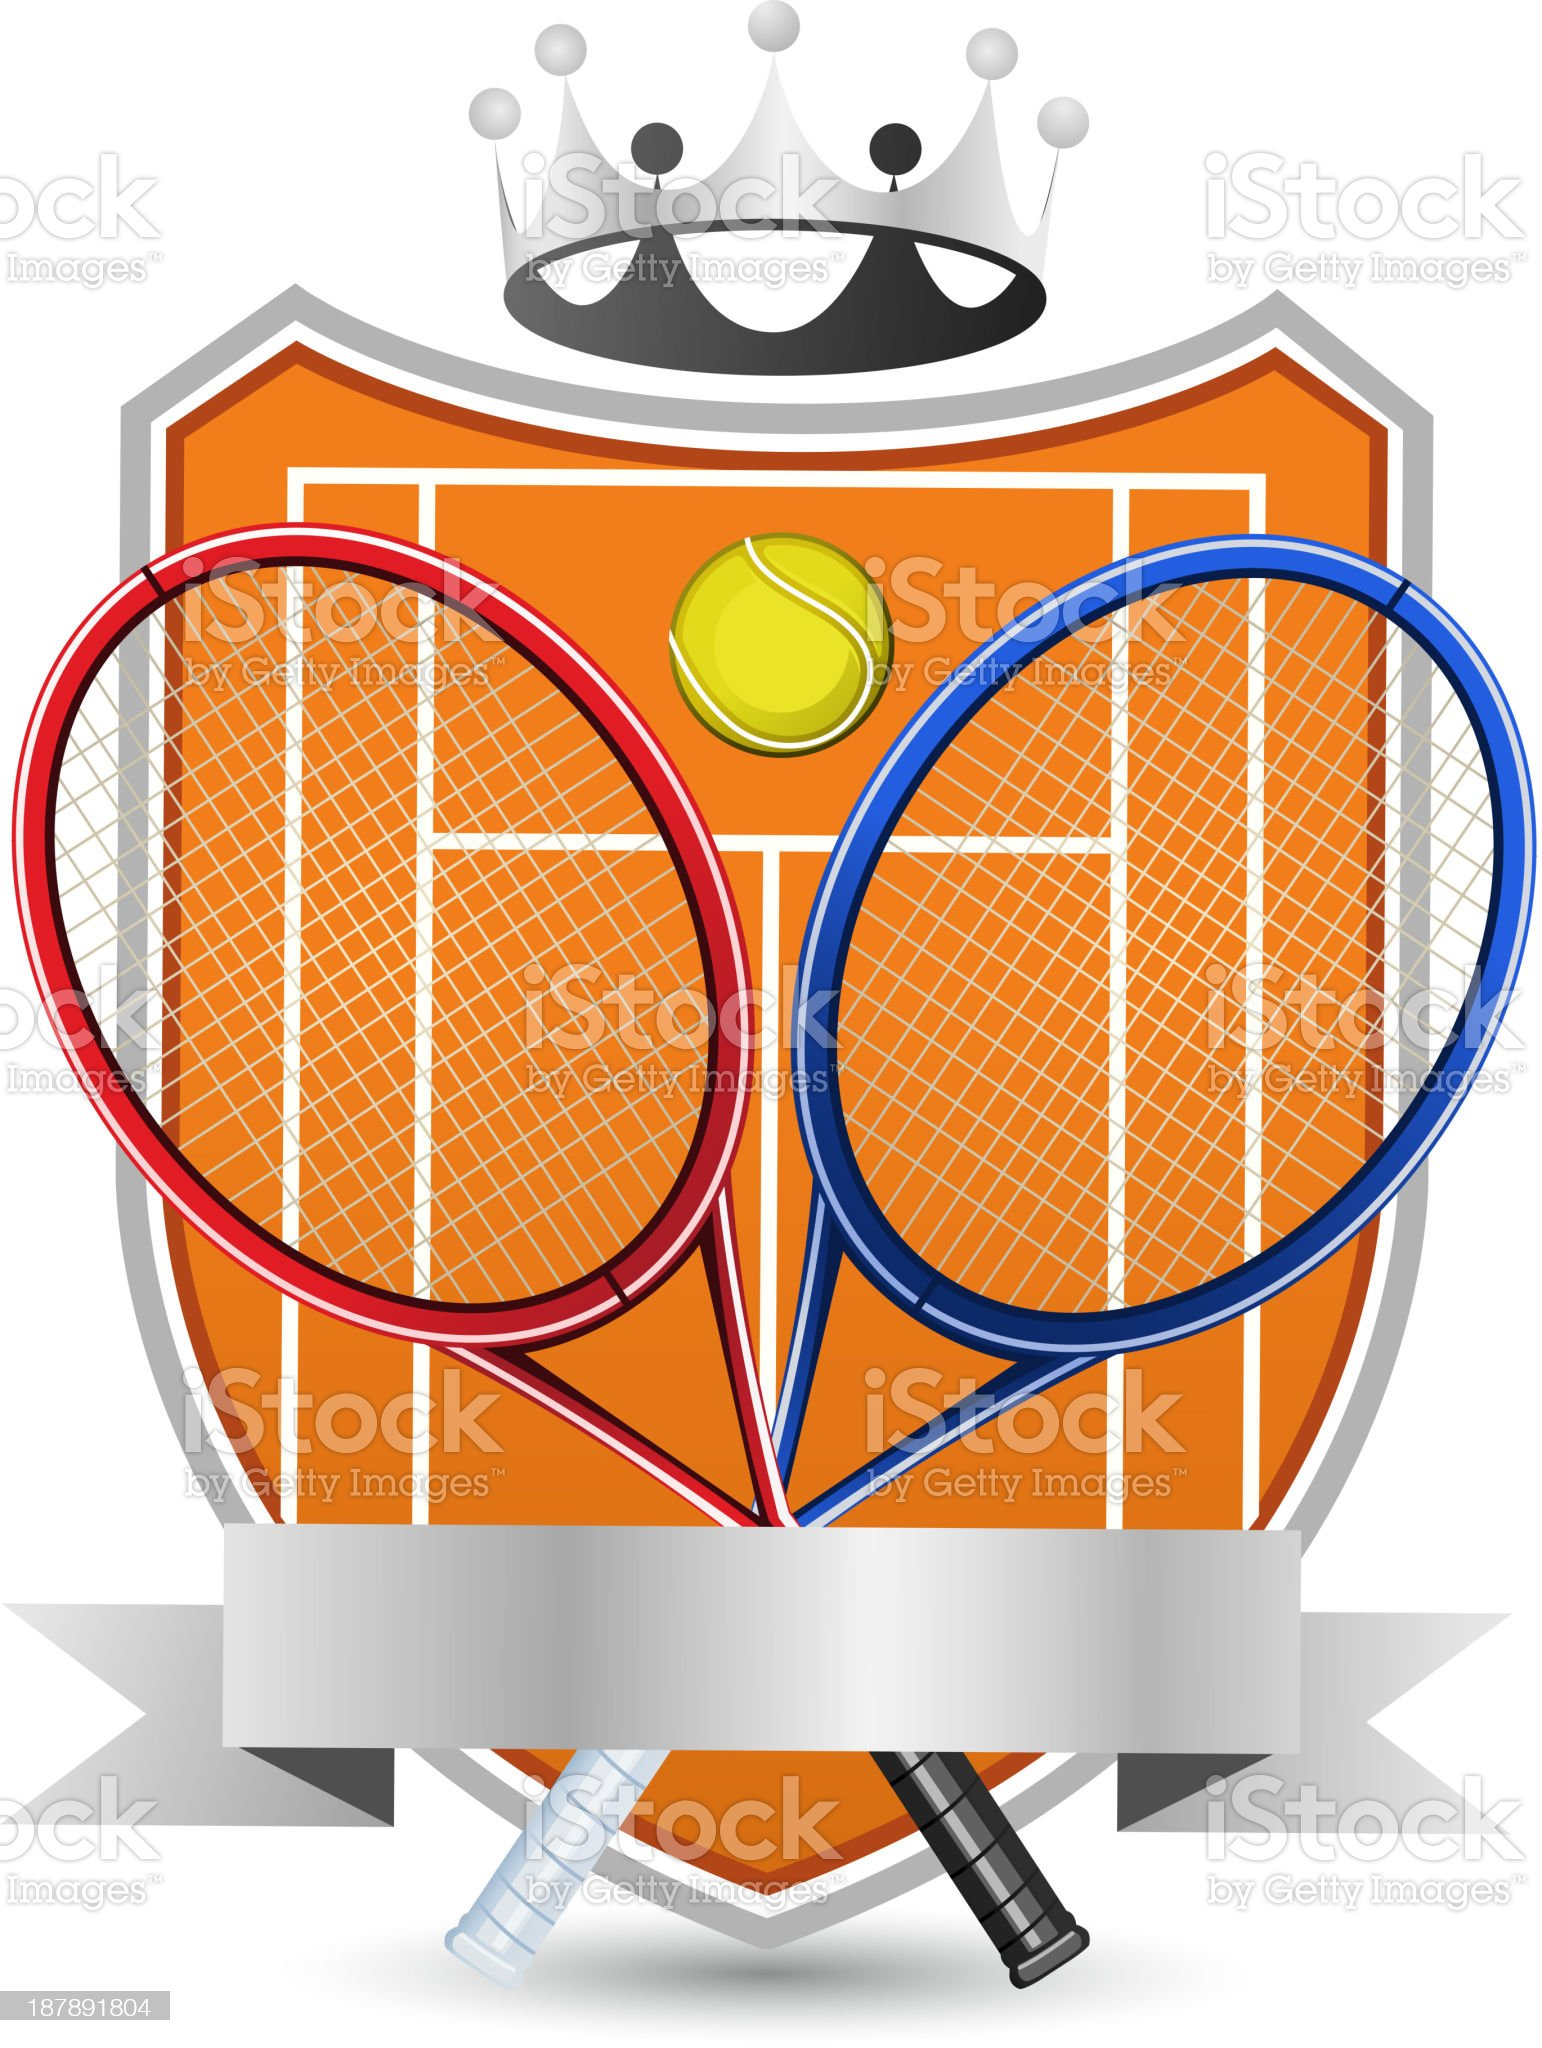 Sport Tennis Field with racket and ball crowned Emblem royalty-free stock vector art